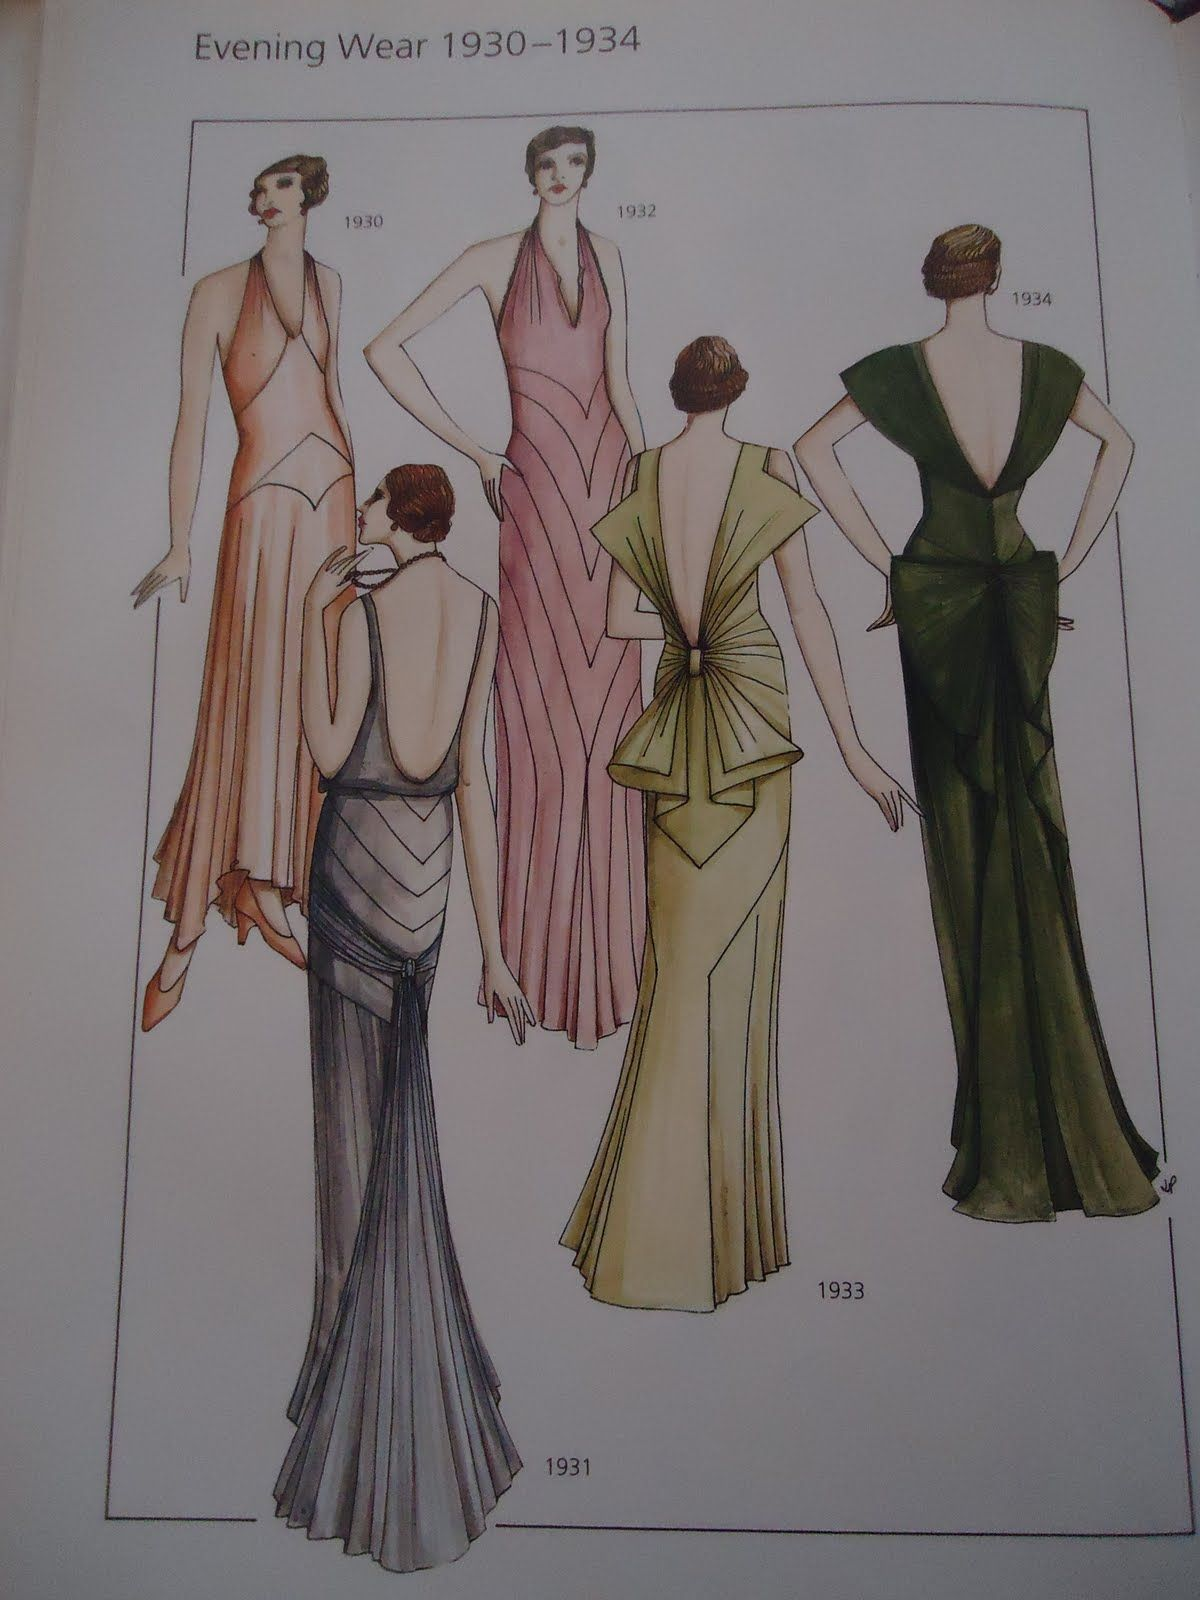 Pin By Ouida Drey On Ladies Are Lovely 1930s Fashion 1930s Fashion Women Fashion History [ 1600 x 1200 Pixel ]